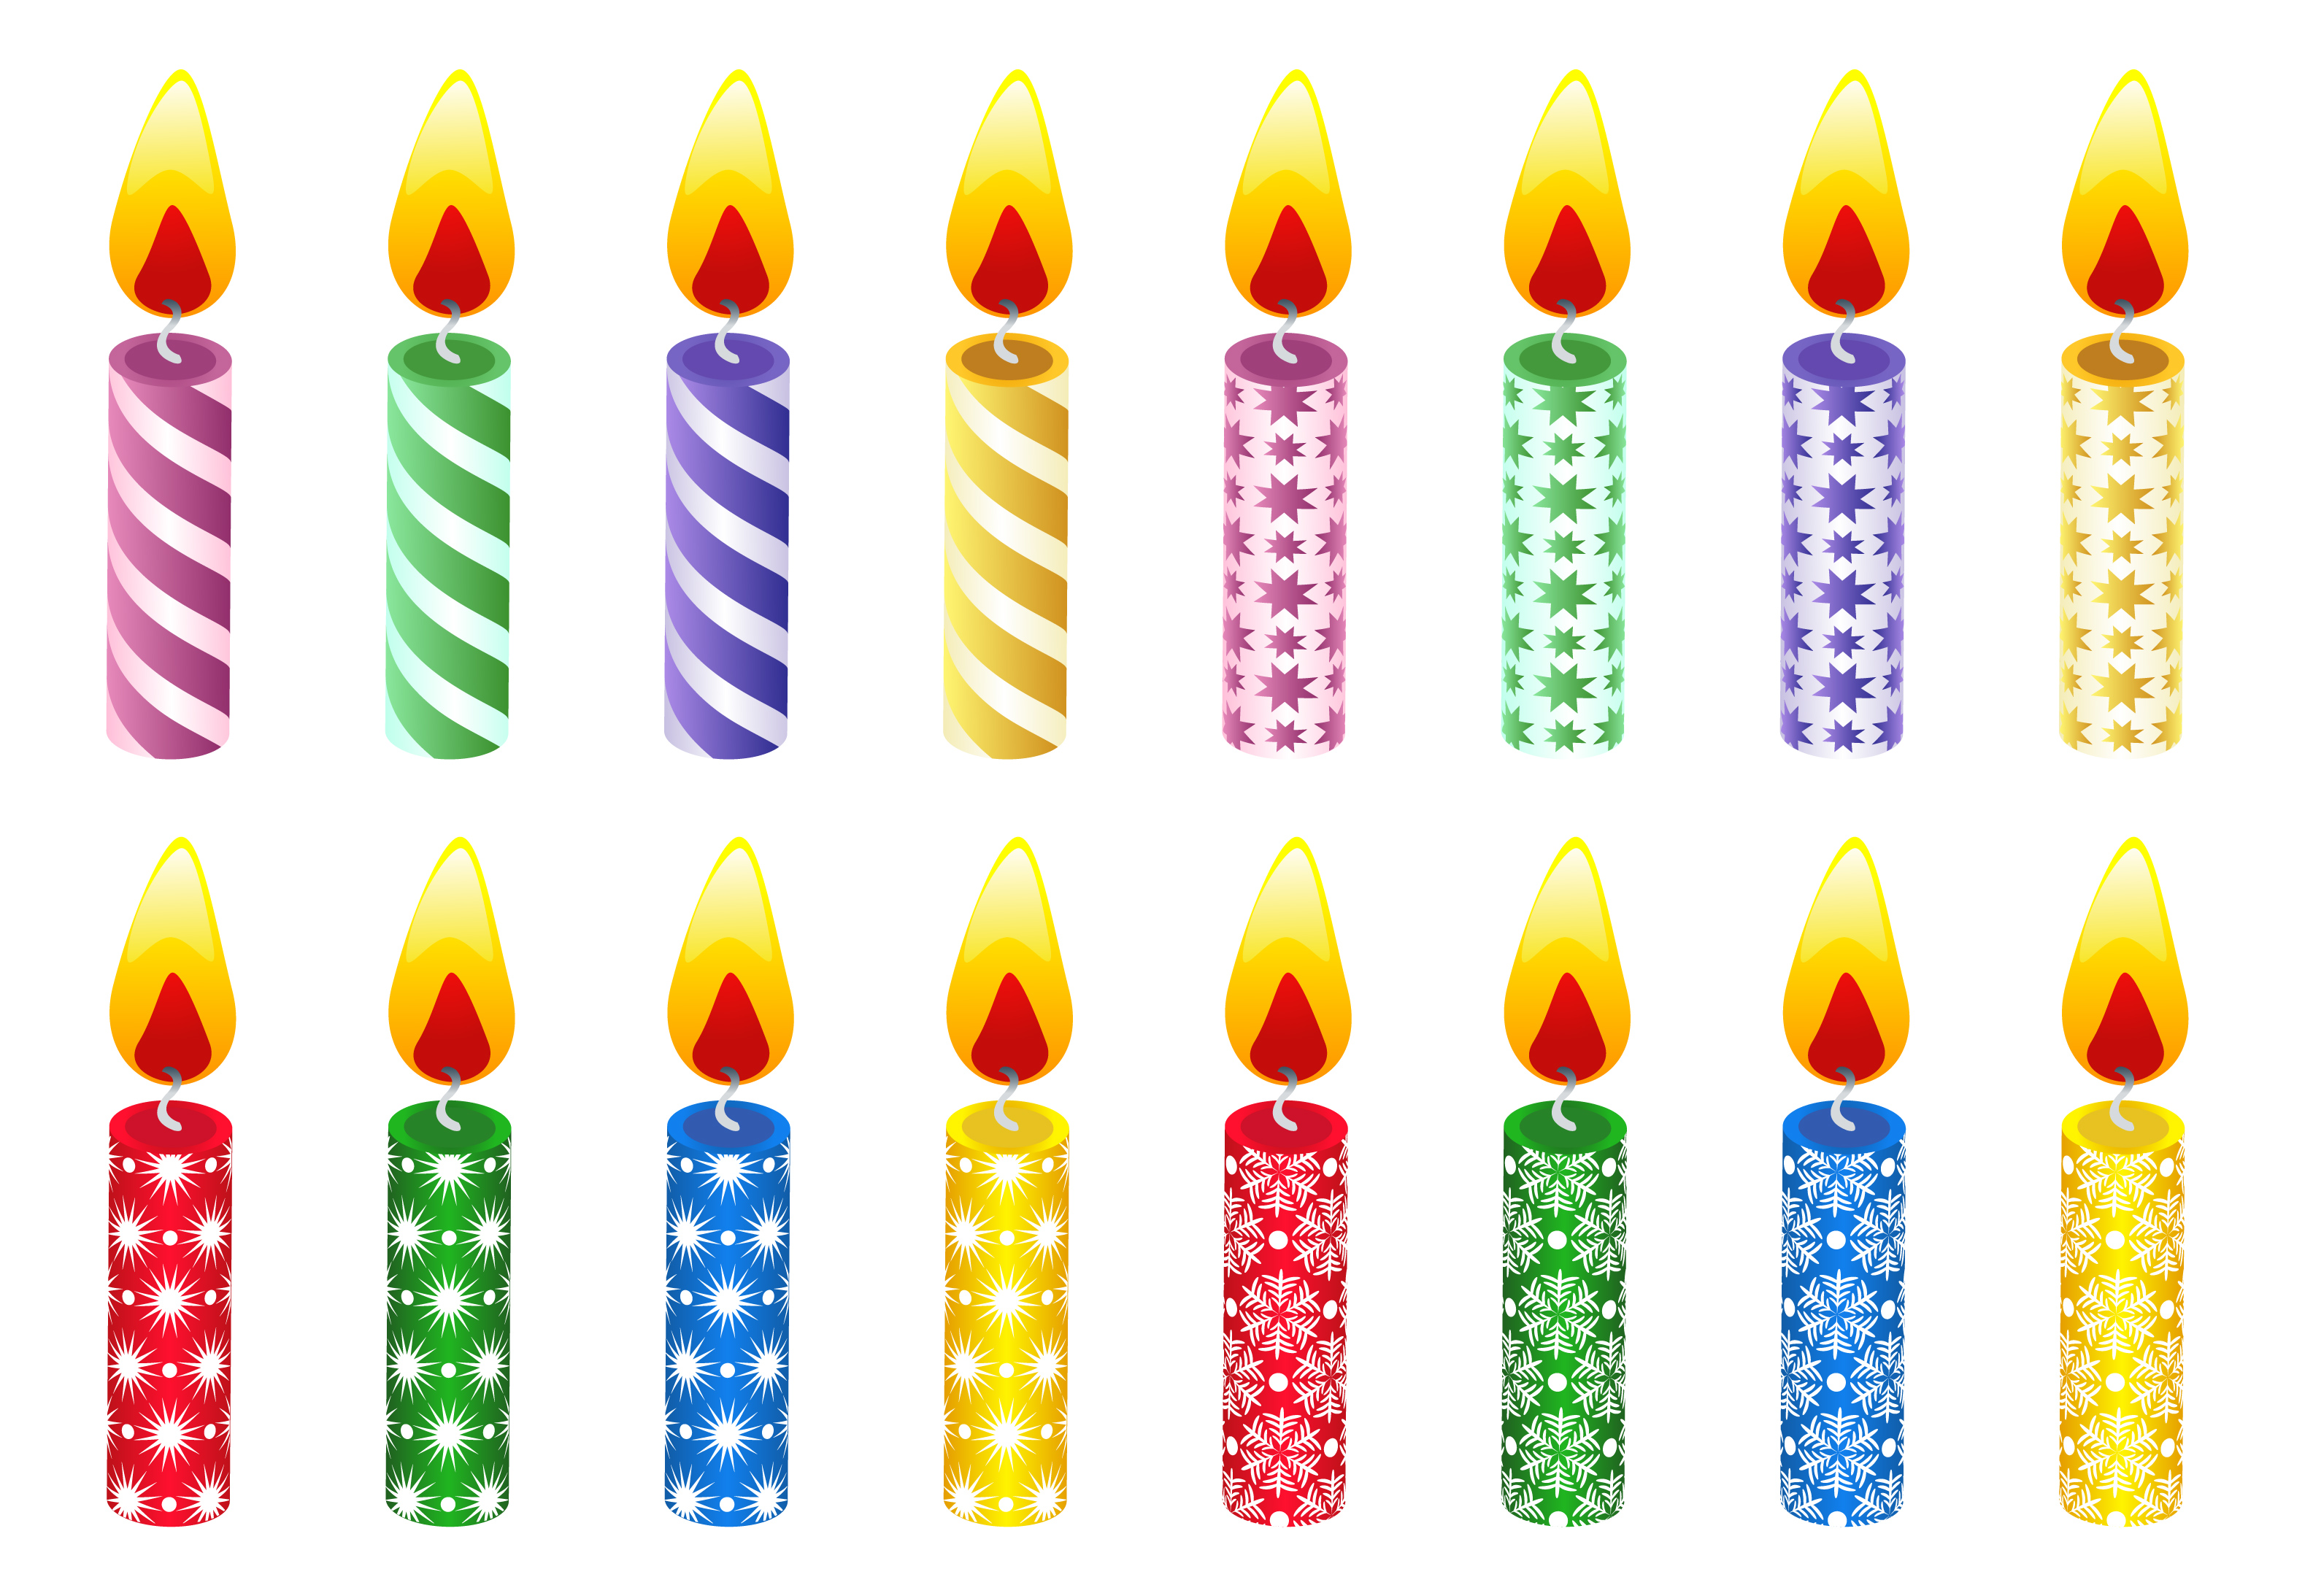 Candle clipart flashlight Clipart Candles Clipart schliferaward schliferaward